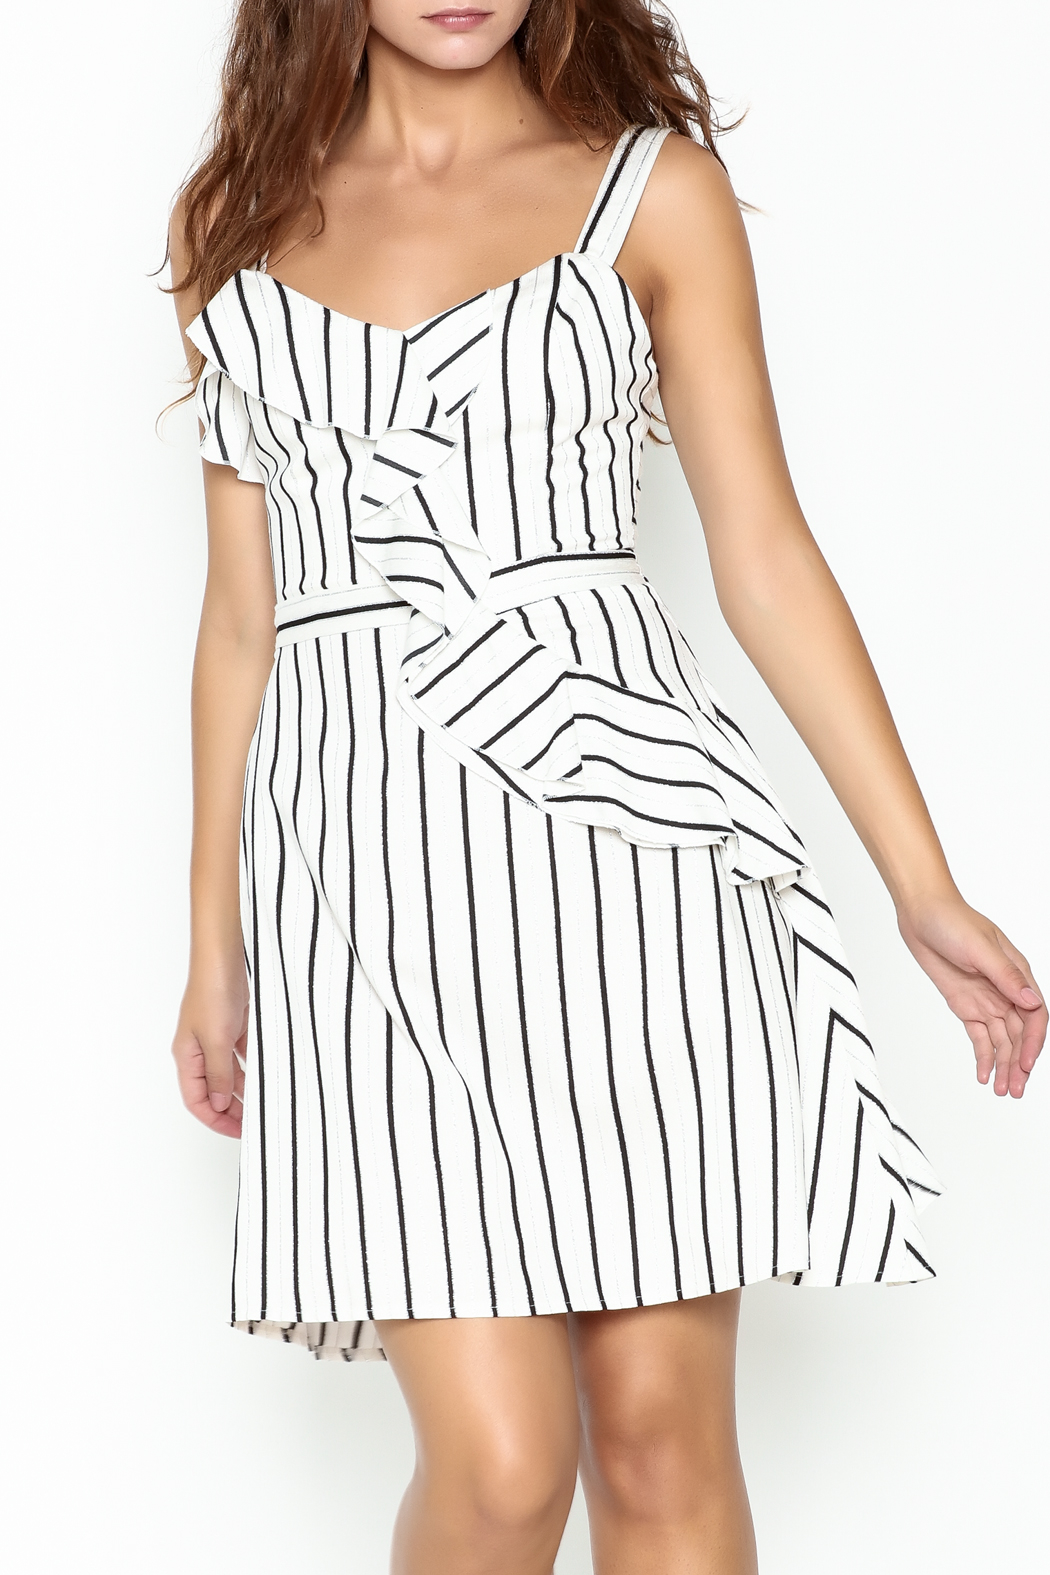 Marvy Fashion Striped Dress - Main Image